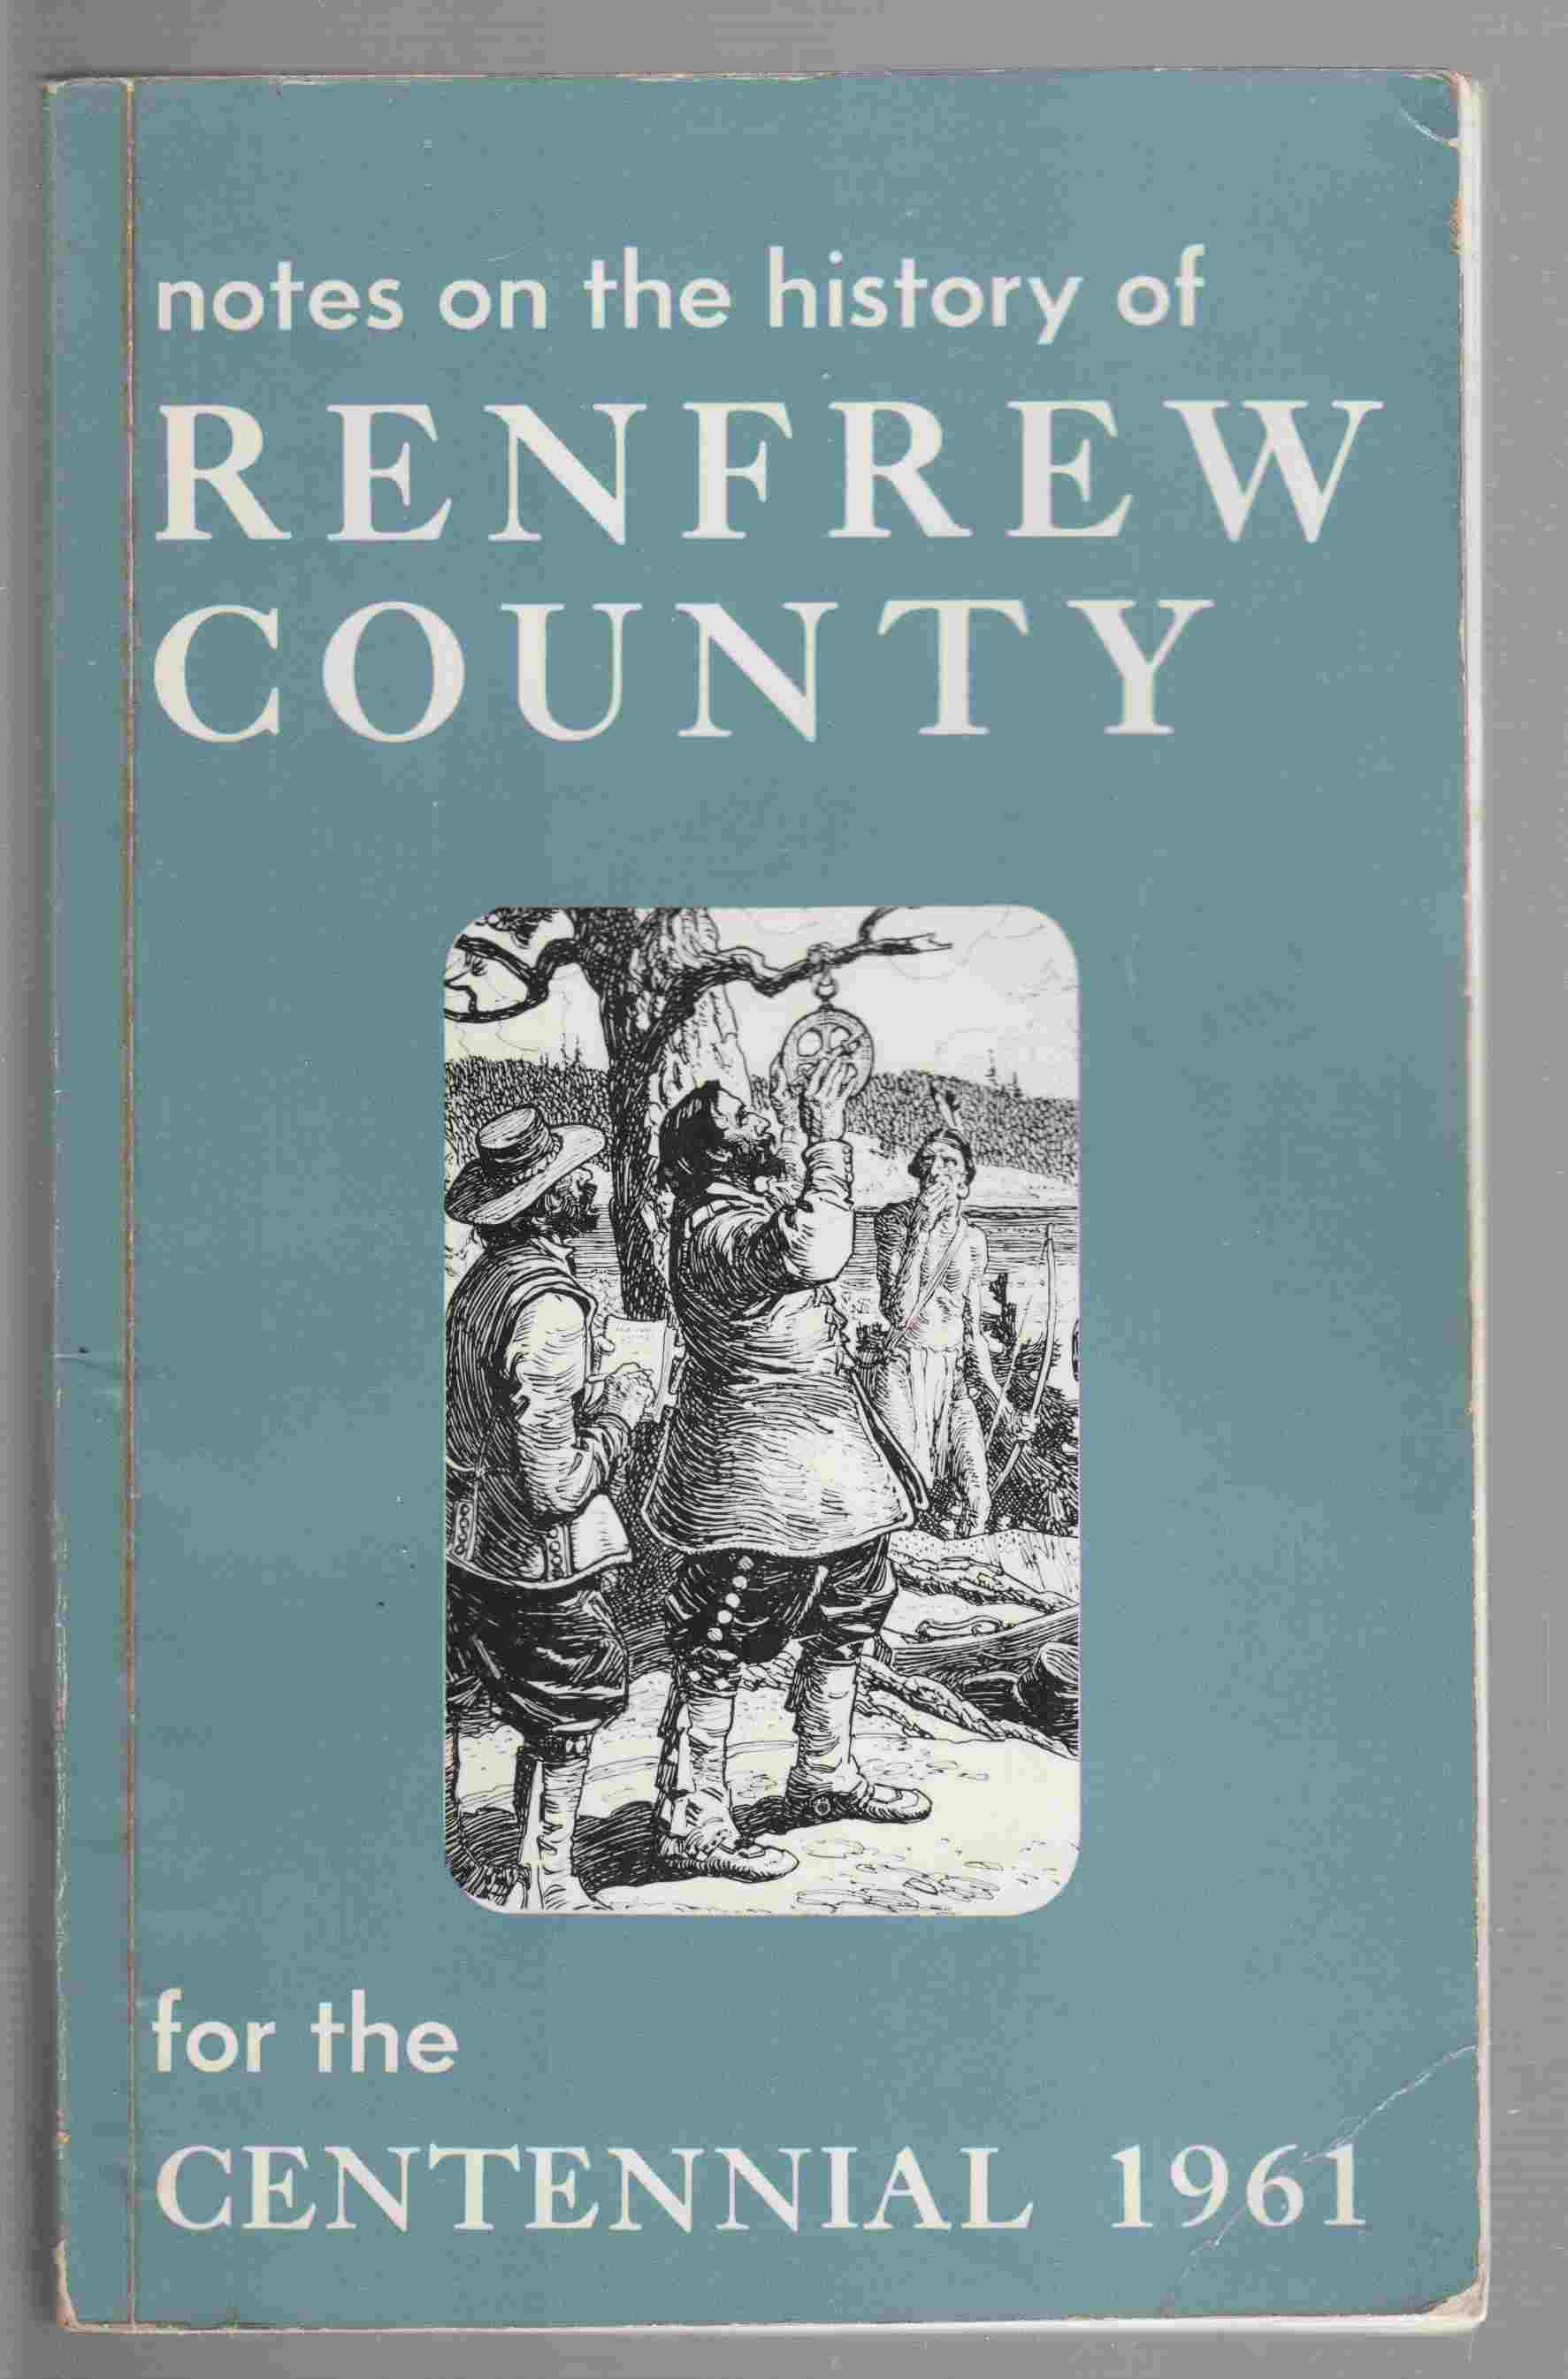 Image for Notes on the History of Renfrew County for the Centennial 1961